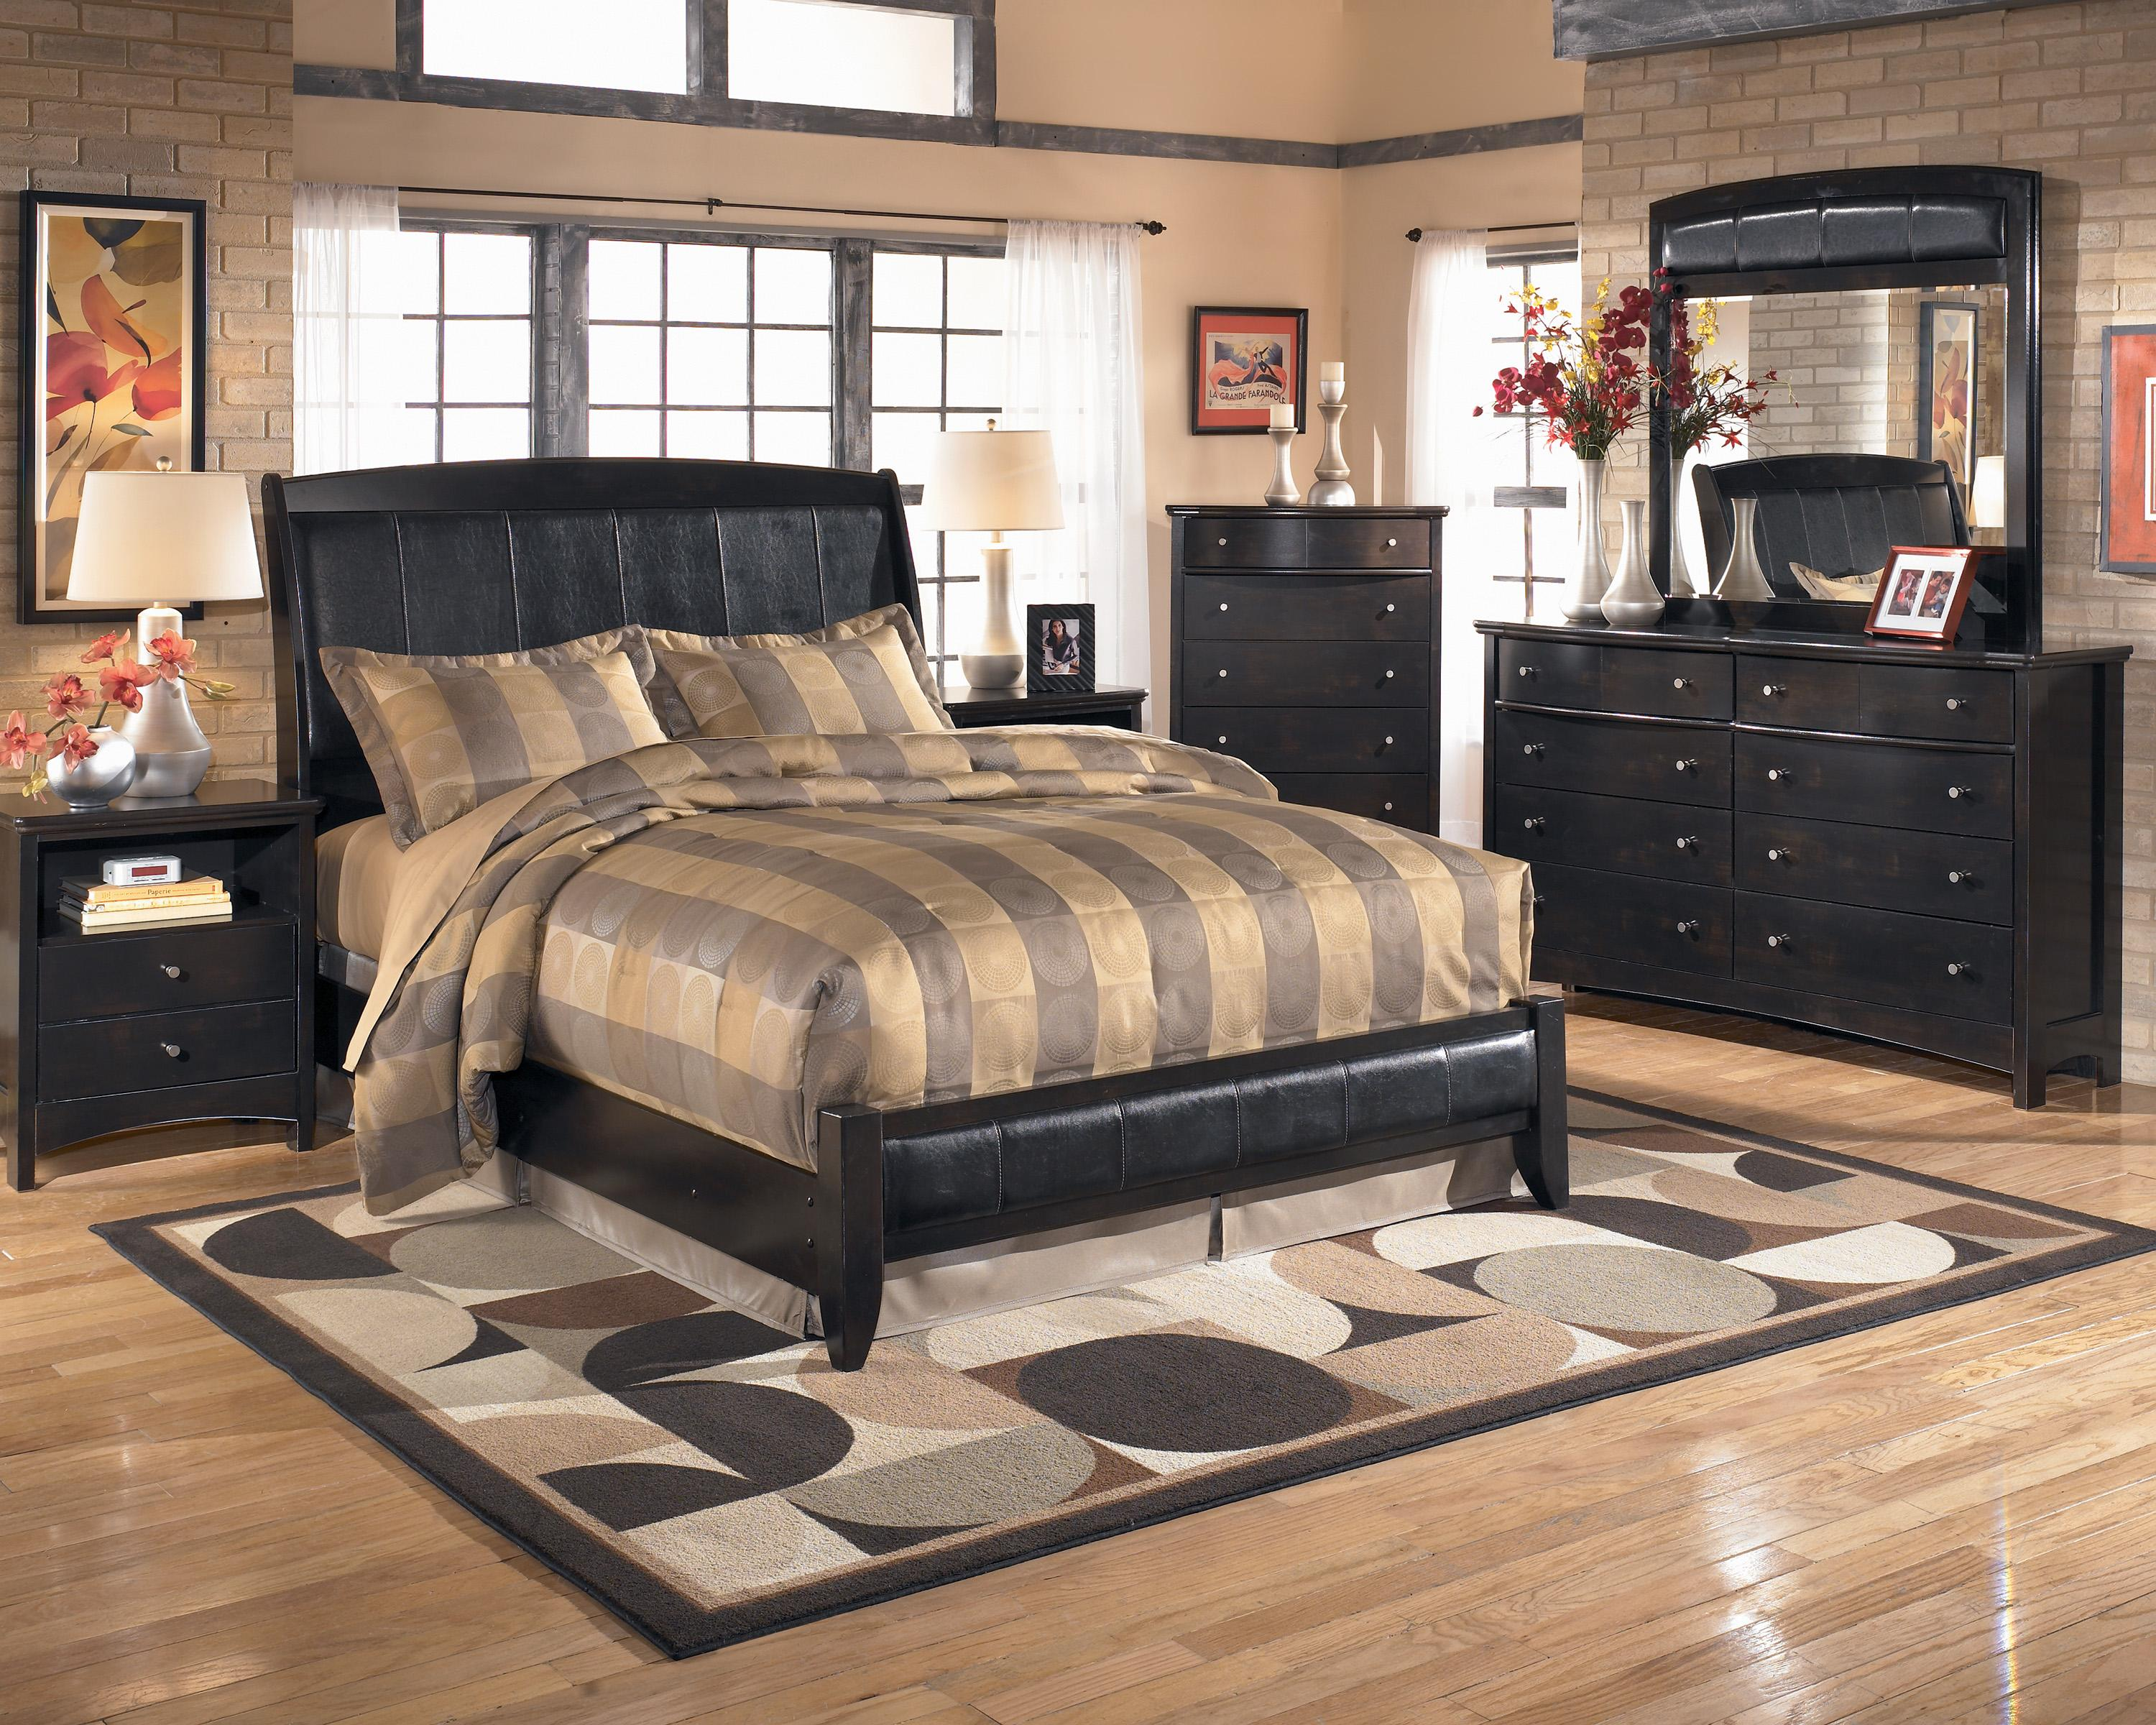 Marlo Furniture Bedroom Sets Upholstered Sleigh Bedroom Set Beaumont Upholstered Sleigh Bed